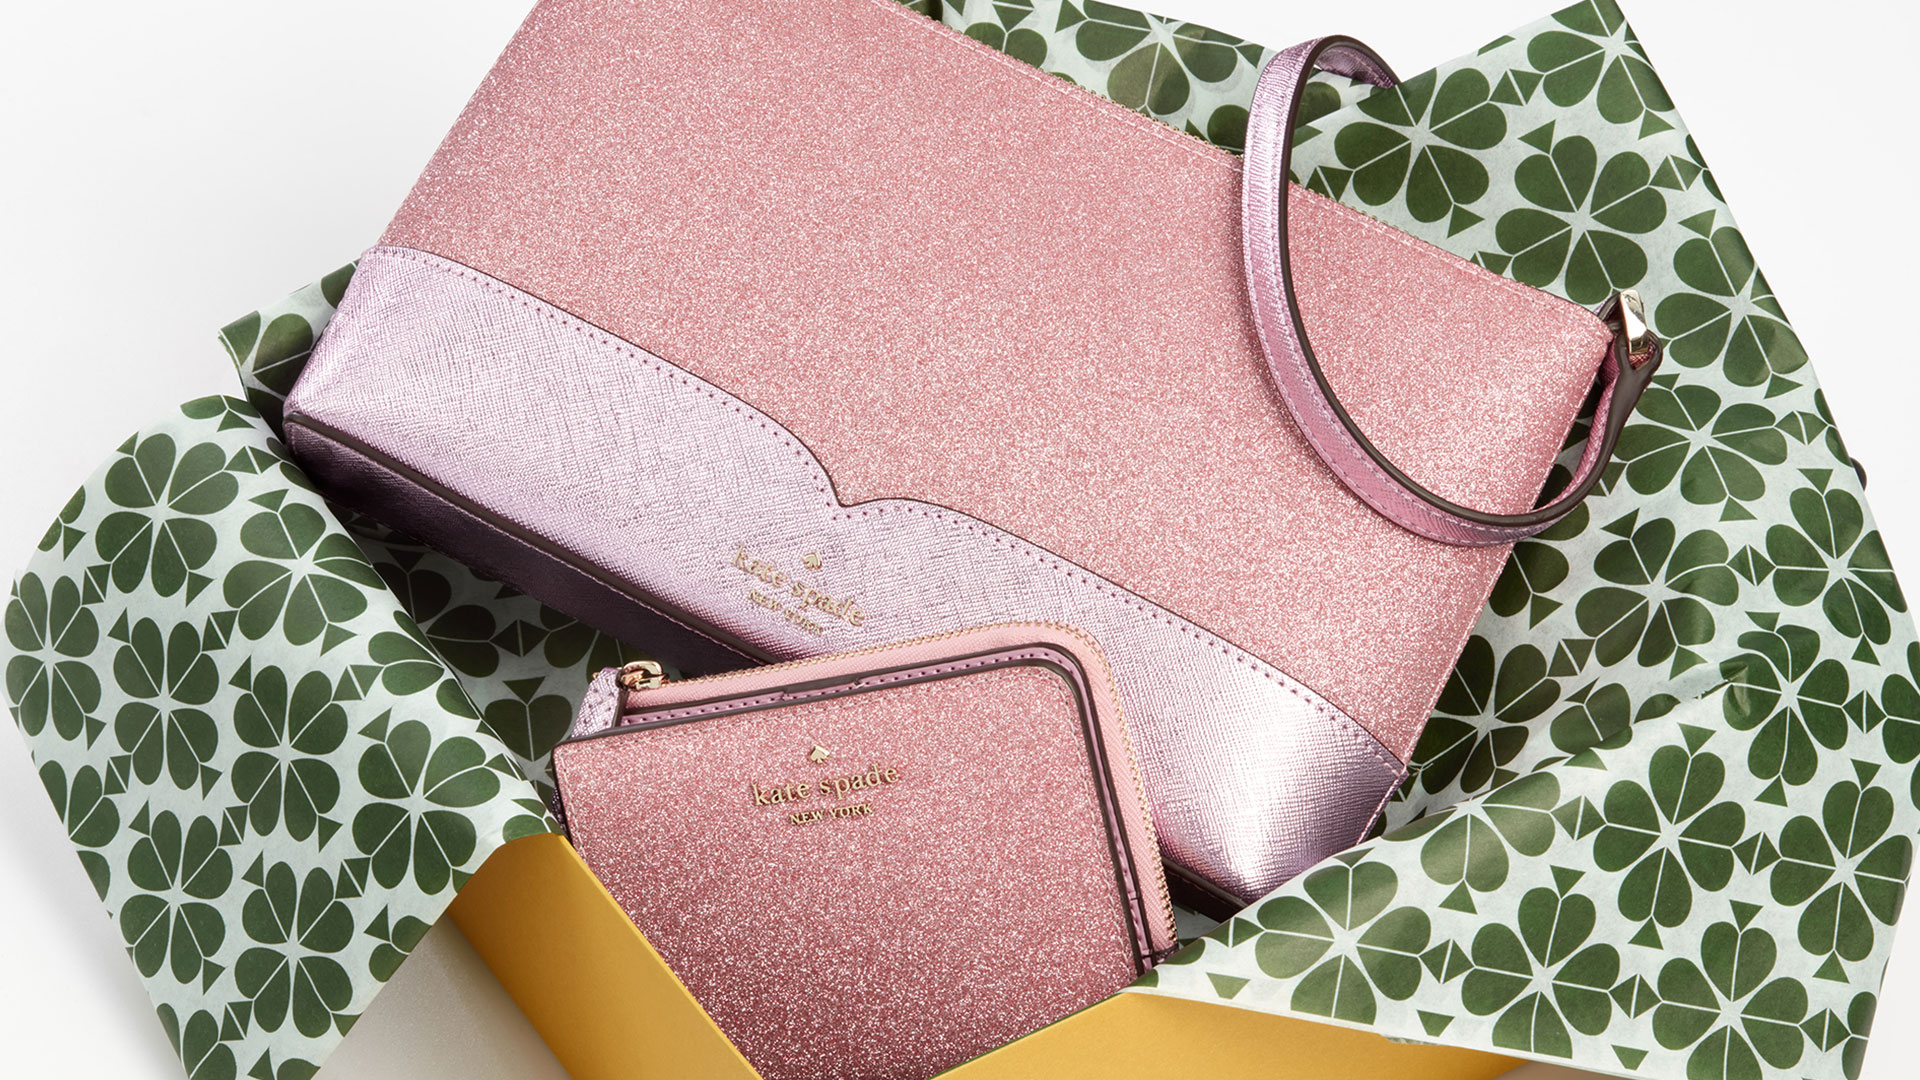 Kate Spade gift set from Bicester Village